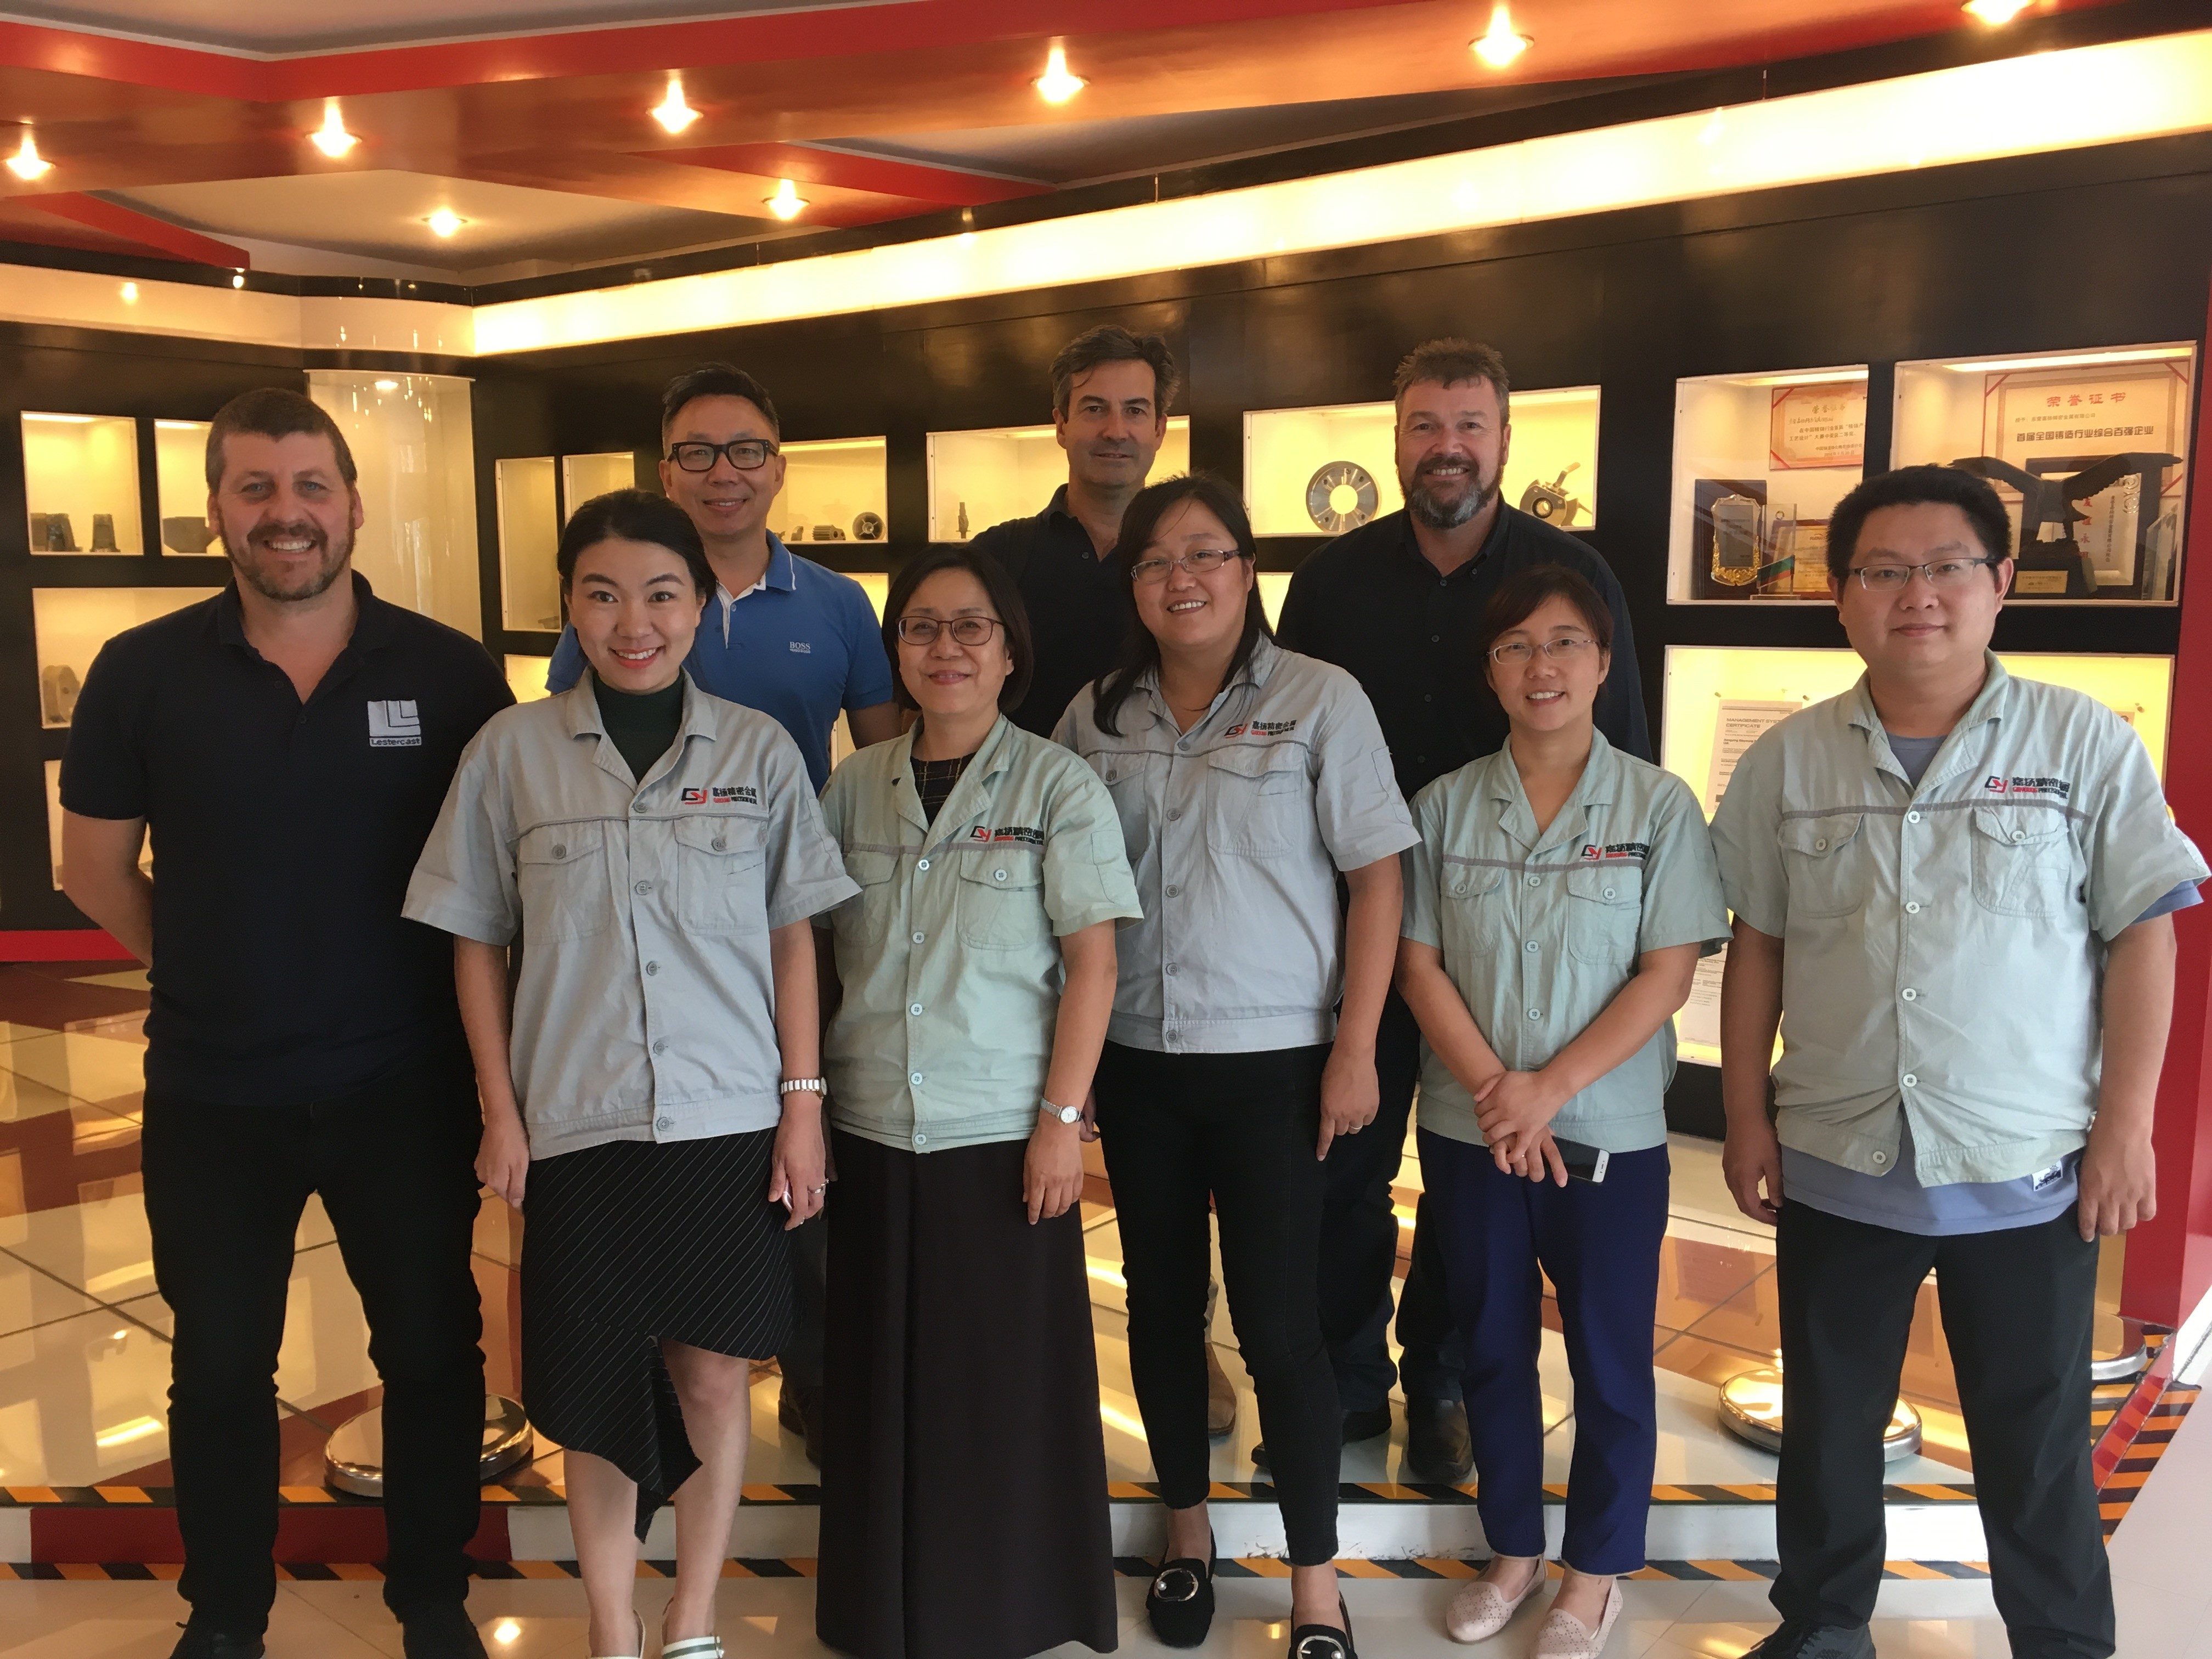 General Manager, Colin Caine and Technical & Operations Manager, Martyn Whelpton with the team in China